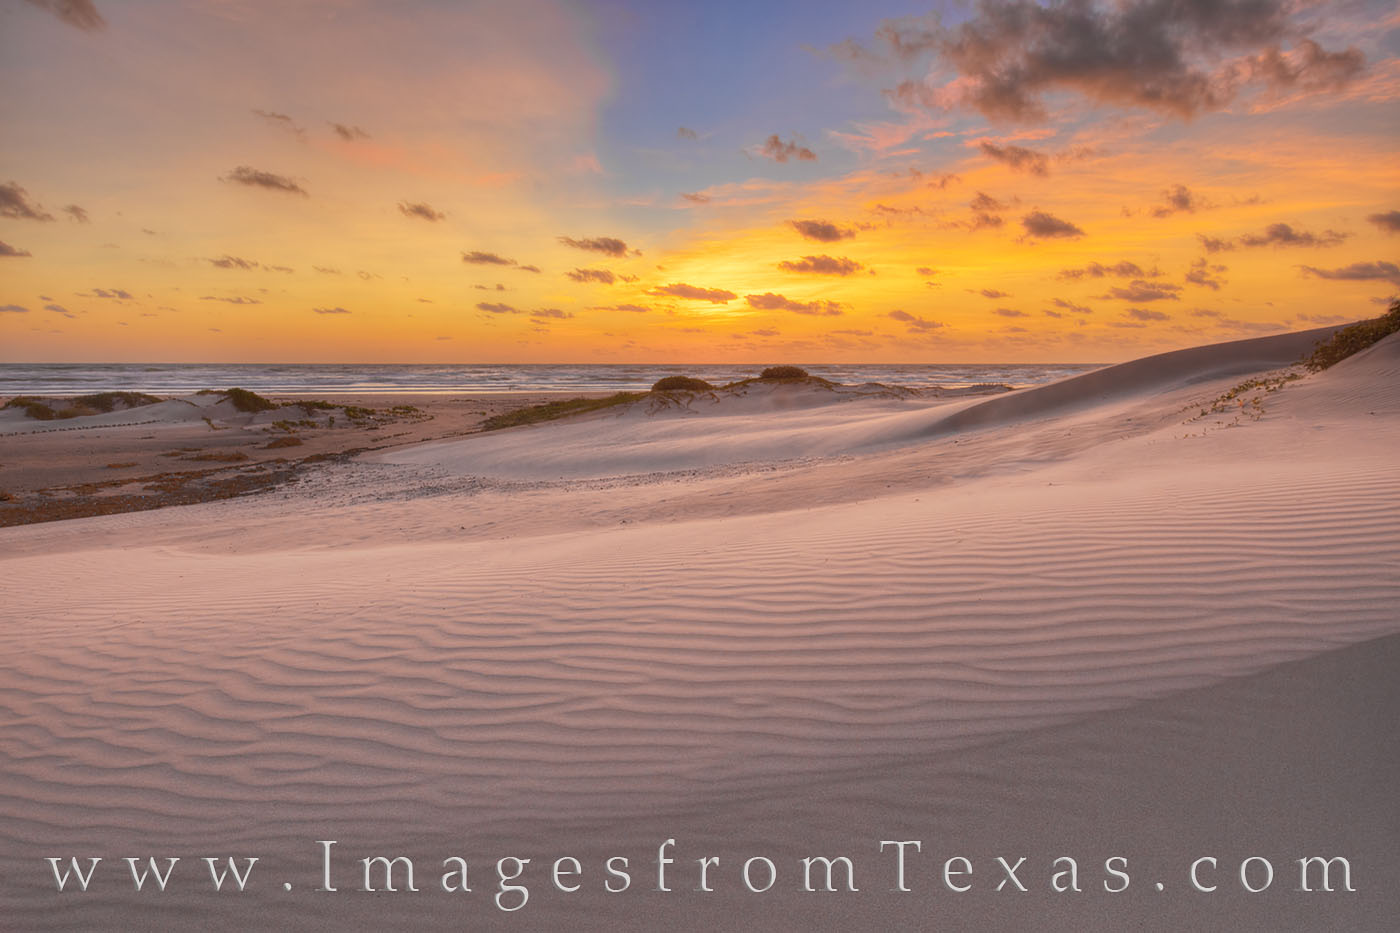 south padre island, south padre, south texas, gulf of mexico, port isabel, sunrise, sand, dunes, beach, photo